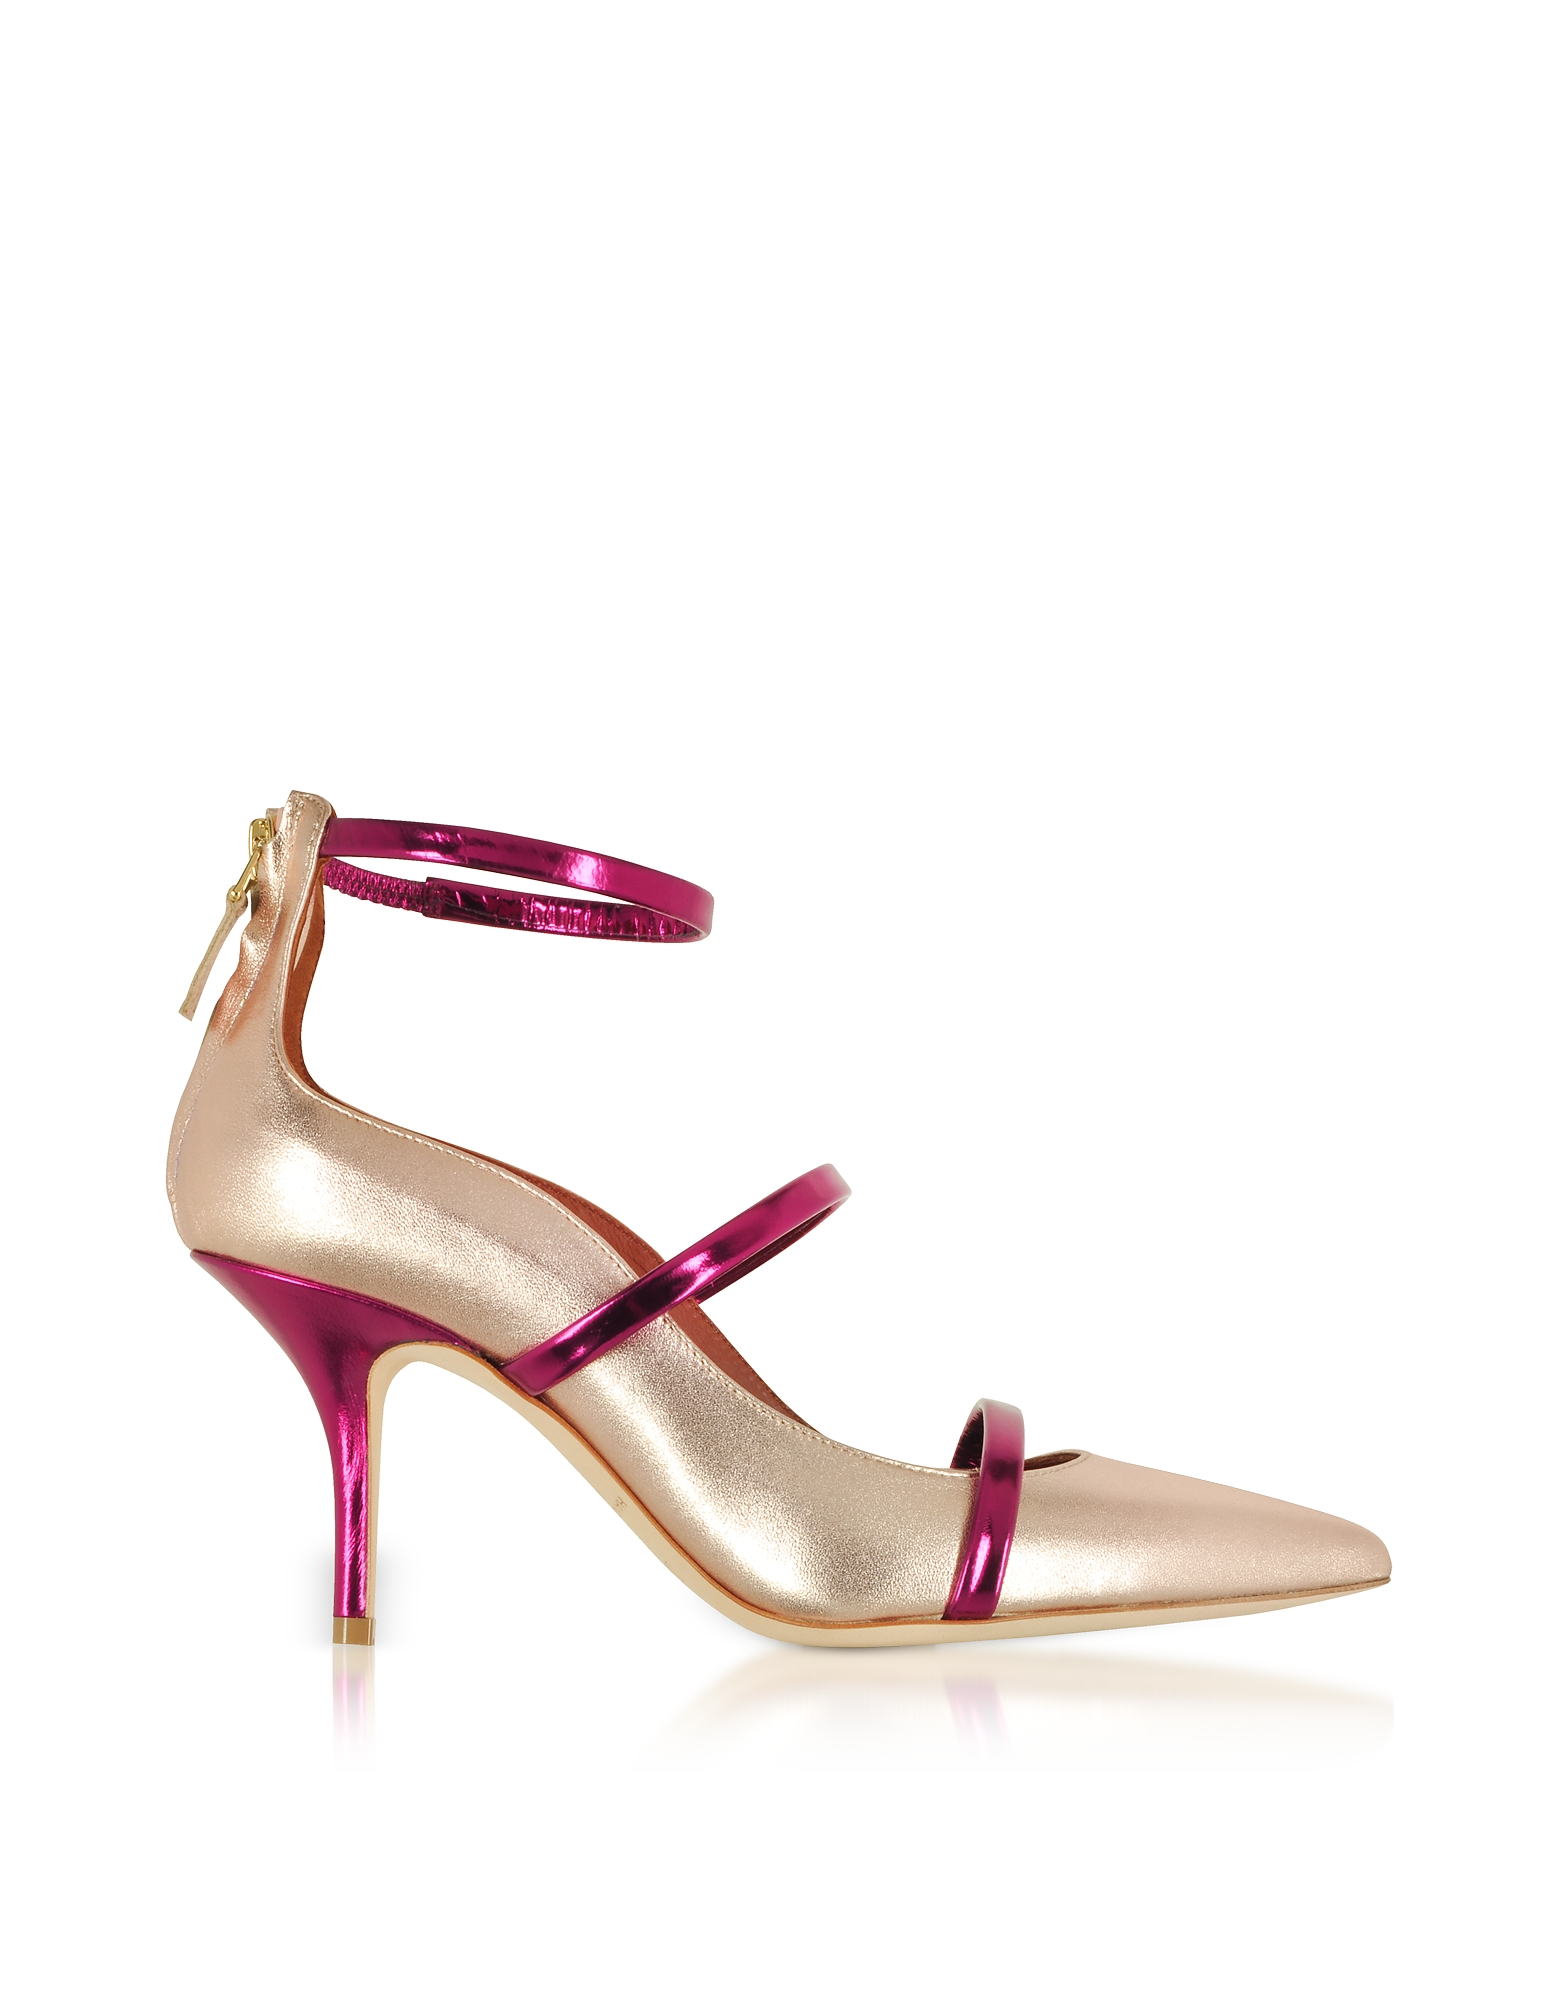 Malone Souliers by Roy Luwolt Shoes, Robyn 70 Metallic Nappa Leather High Heel Pumps